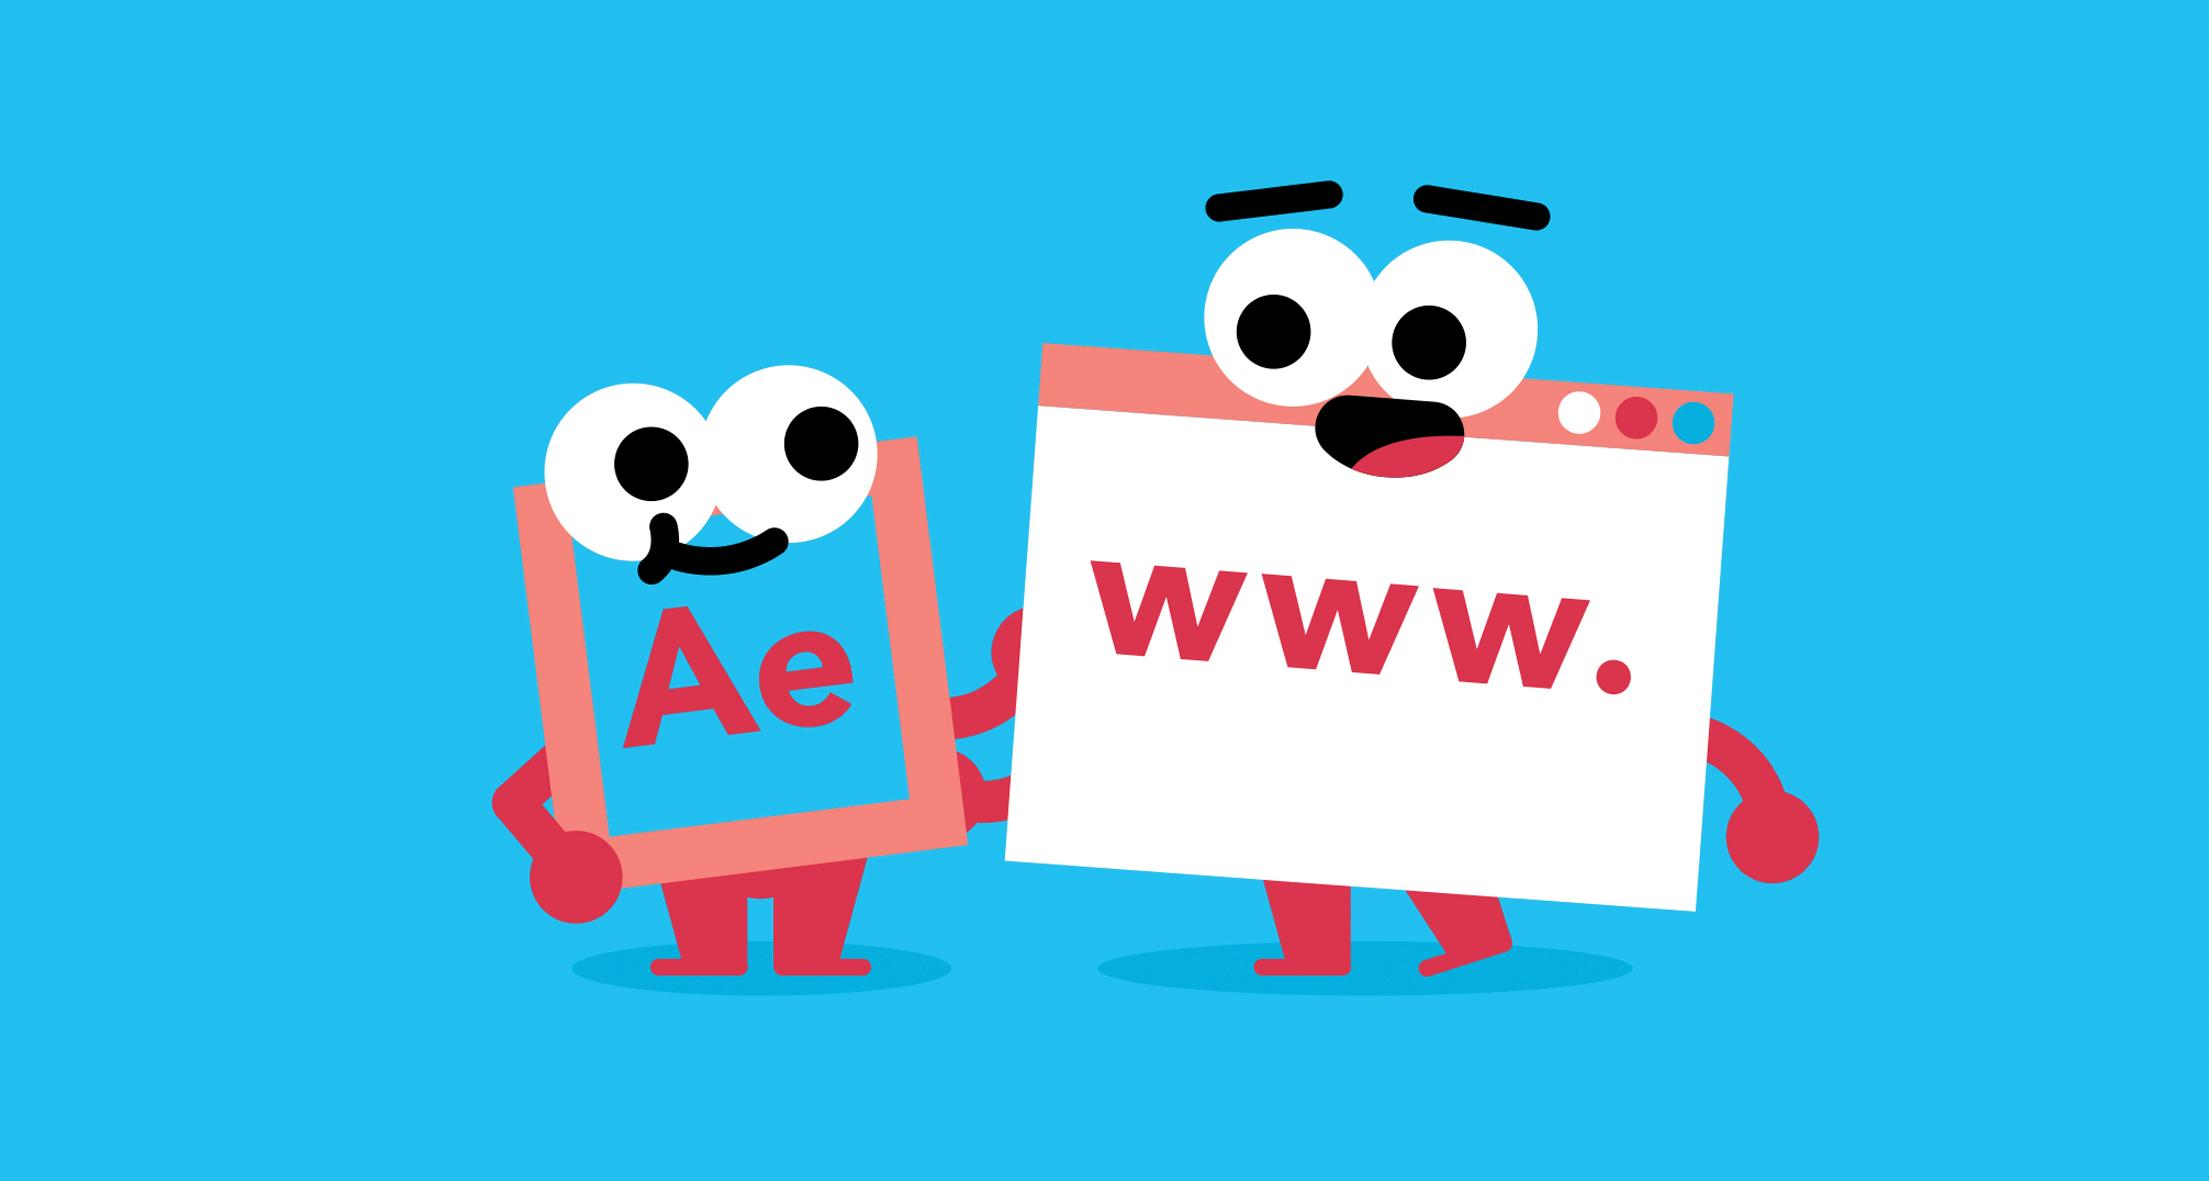 Ae character and www. character